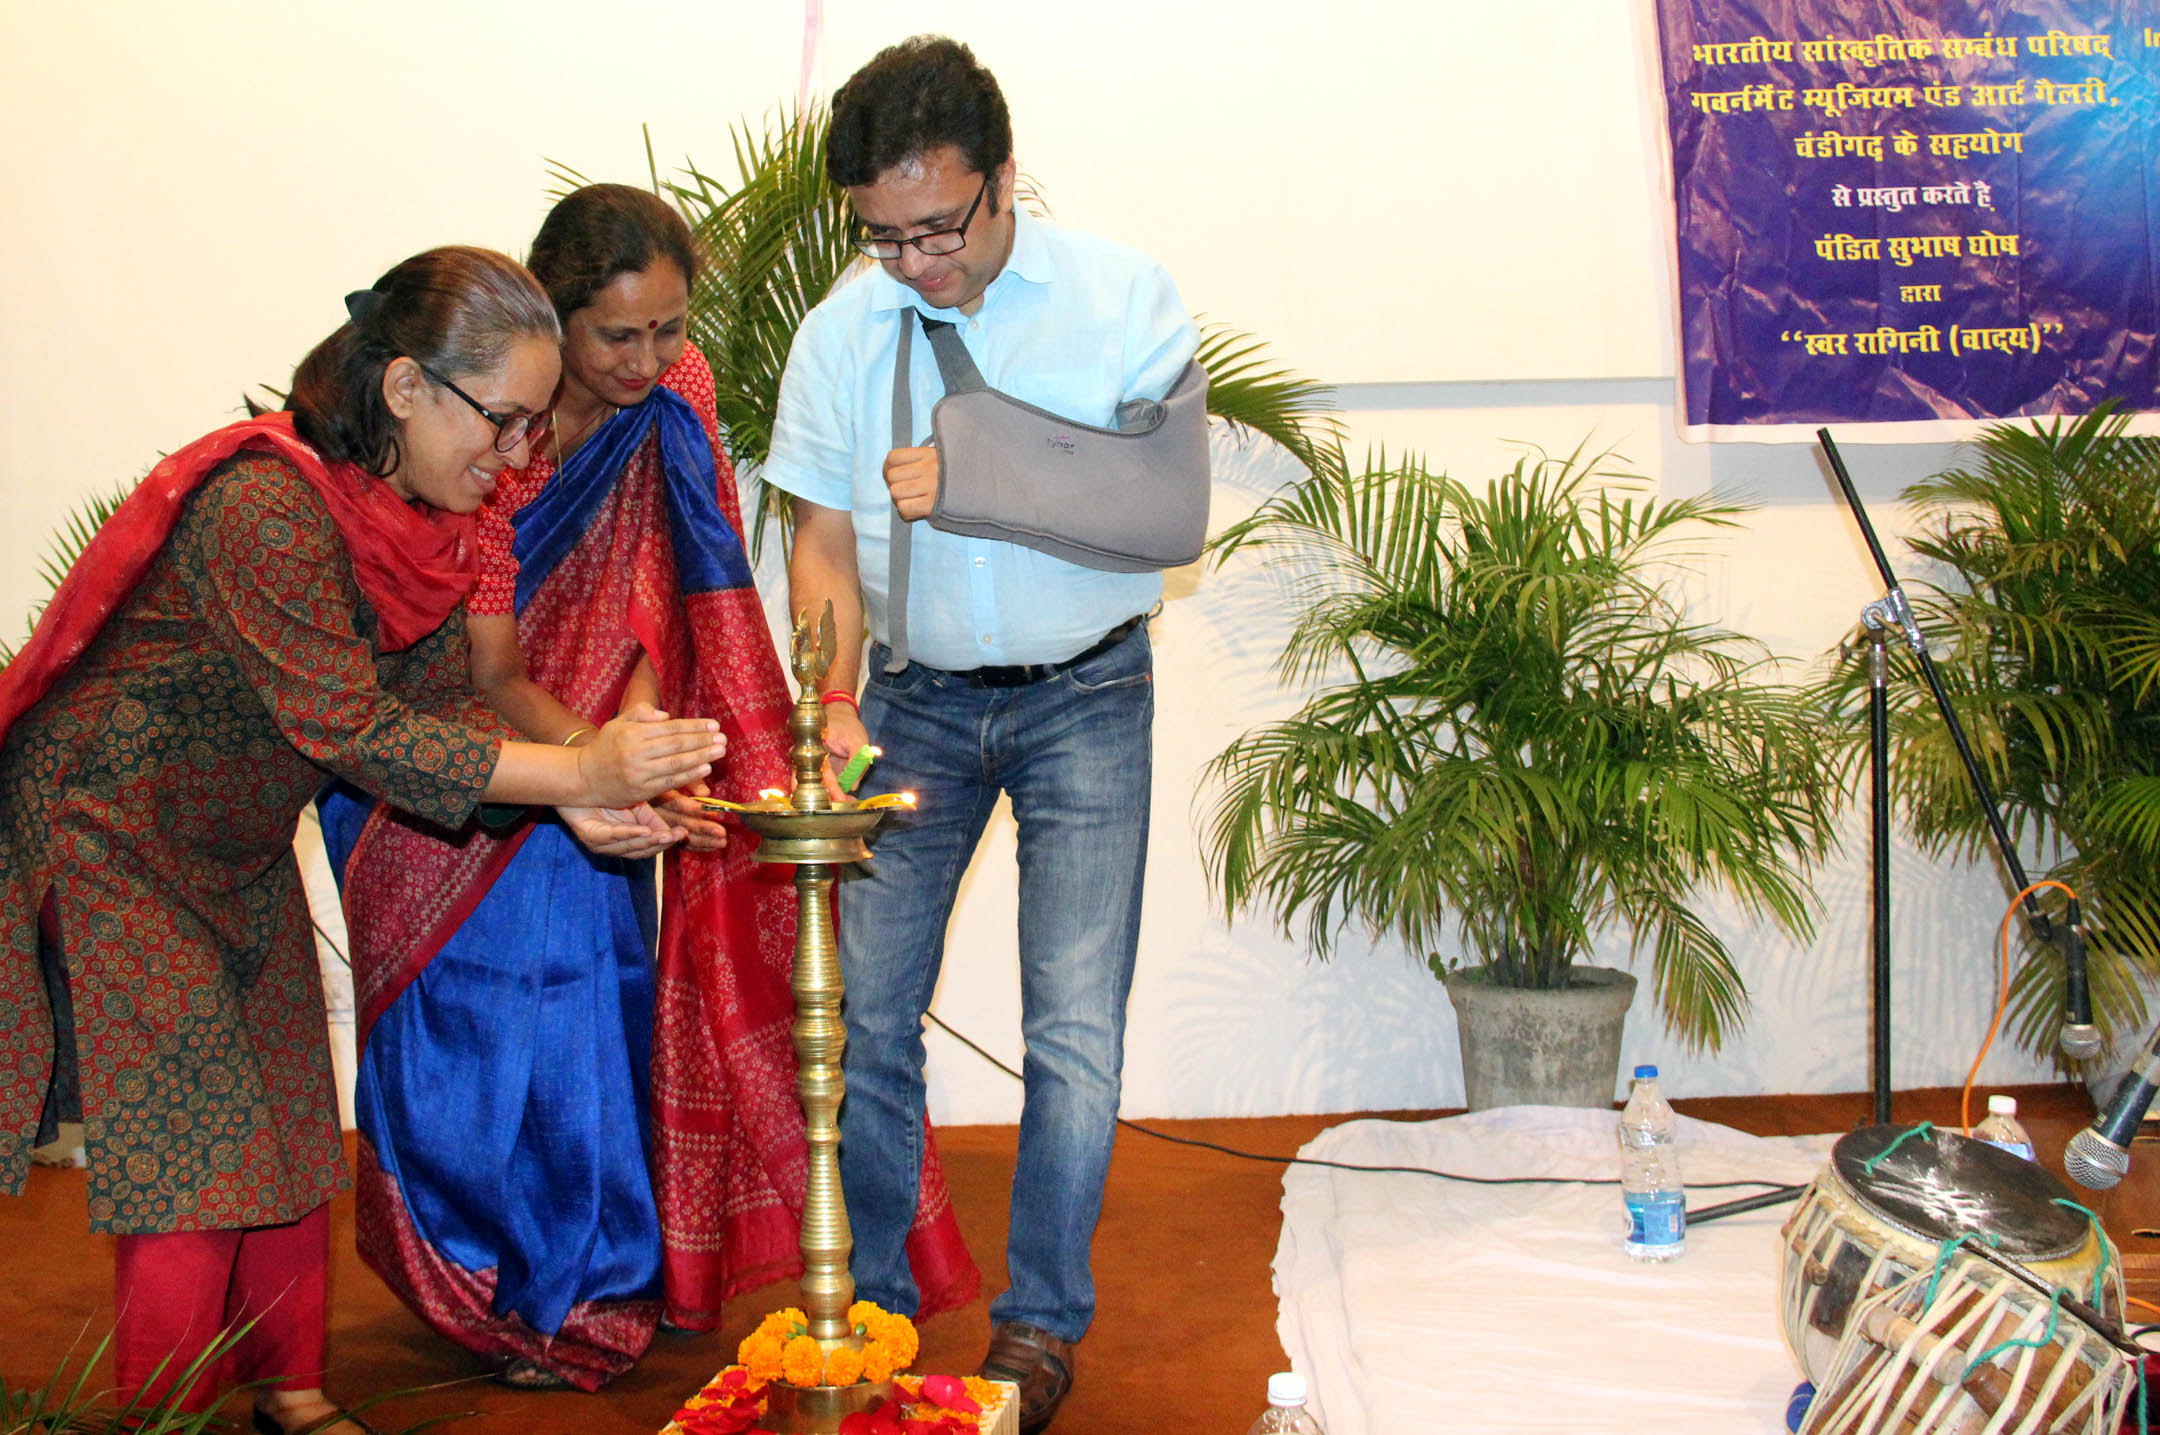 UT Home Secretary, Shri Anurag Agarwal lighting the traditional lamp at the inauguration of Swar Raagini Instrumental by Pt. Subhash Ghosh at Govt. Museum& Art Gallery Sector 10 Chandigarh on Tuseday July 26,2016.